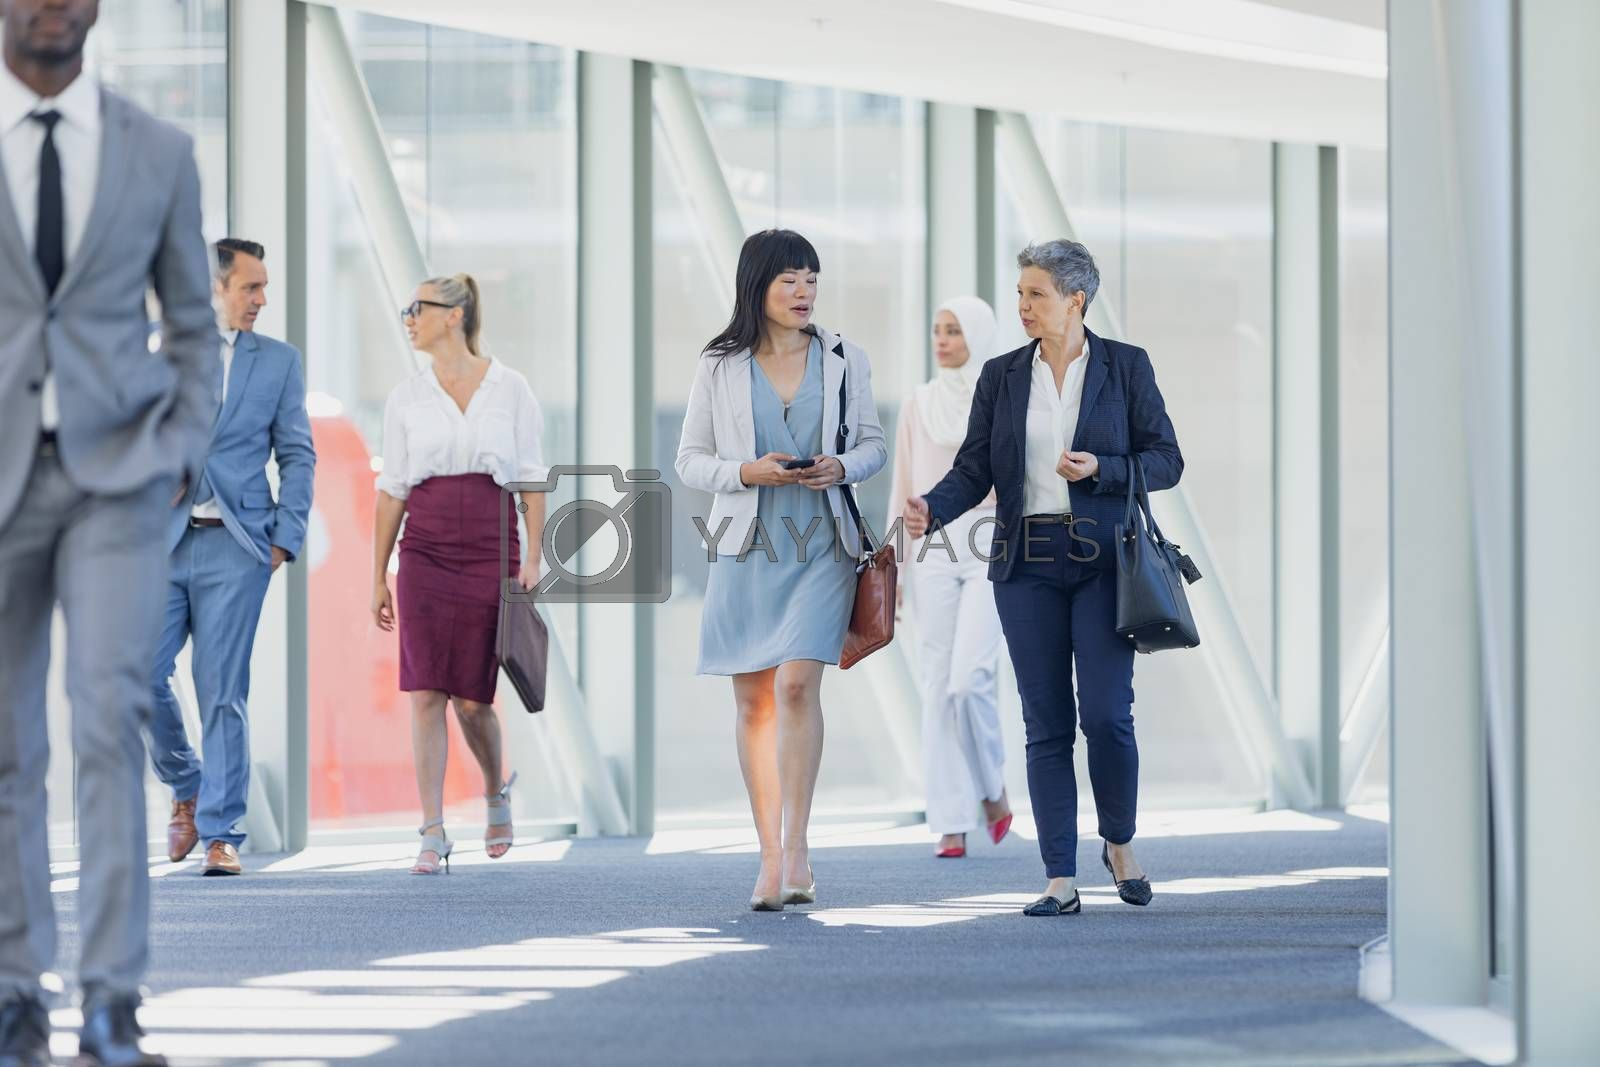 Front view of diverse businesswomen interacting with each other while walking in corridor in modern office